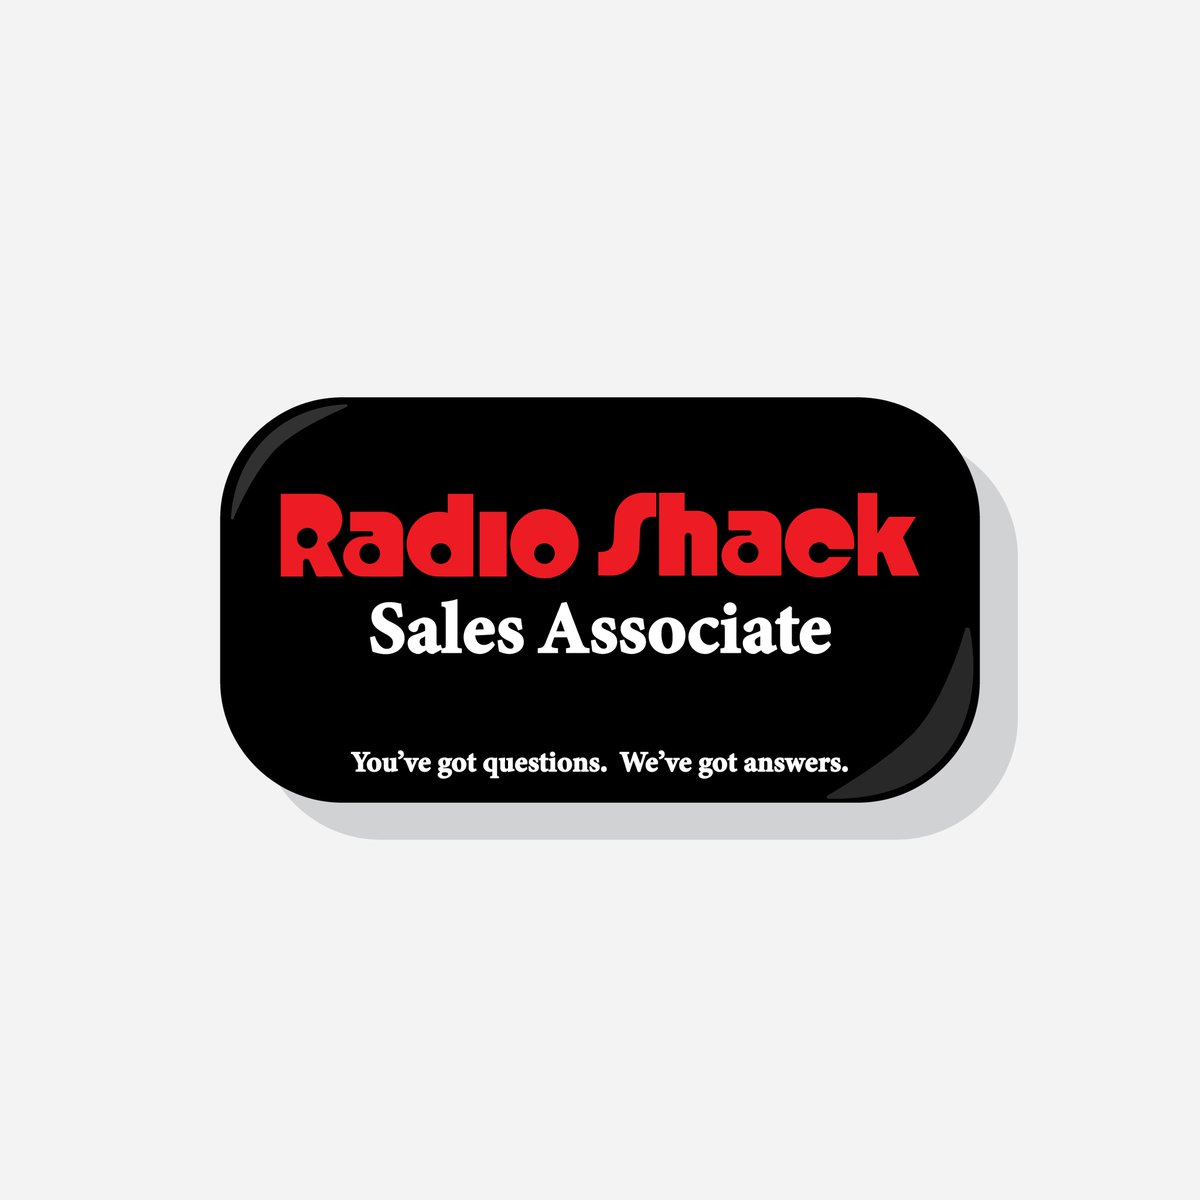 I worked at Radio Shack, back when the Internet was in its infancy, cell phones were moving from cars to handhelds, and a cordless phone's megahertz was extremely important. It is astonishing how much has evolved since then. #radioshack #retrotech #work #oldjobs #retrostores